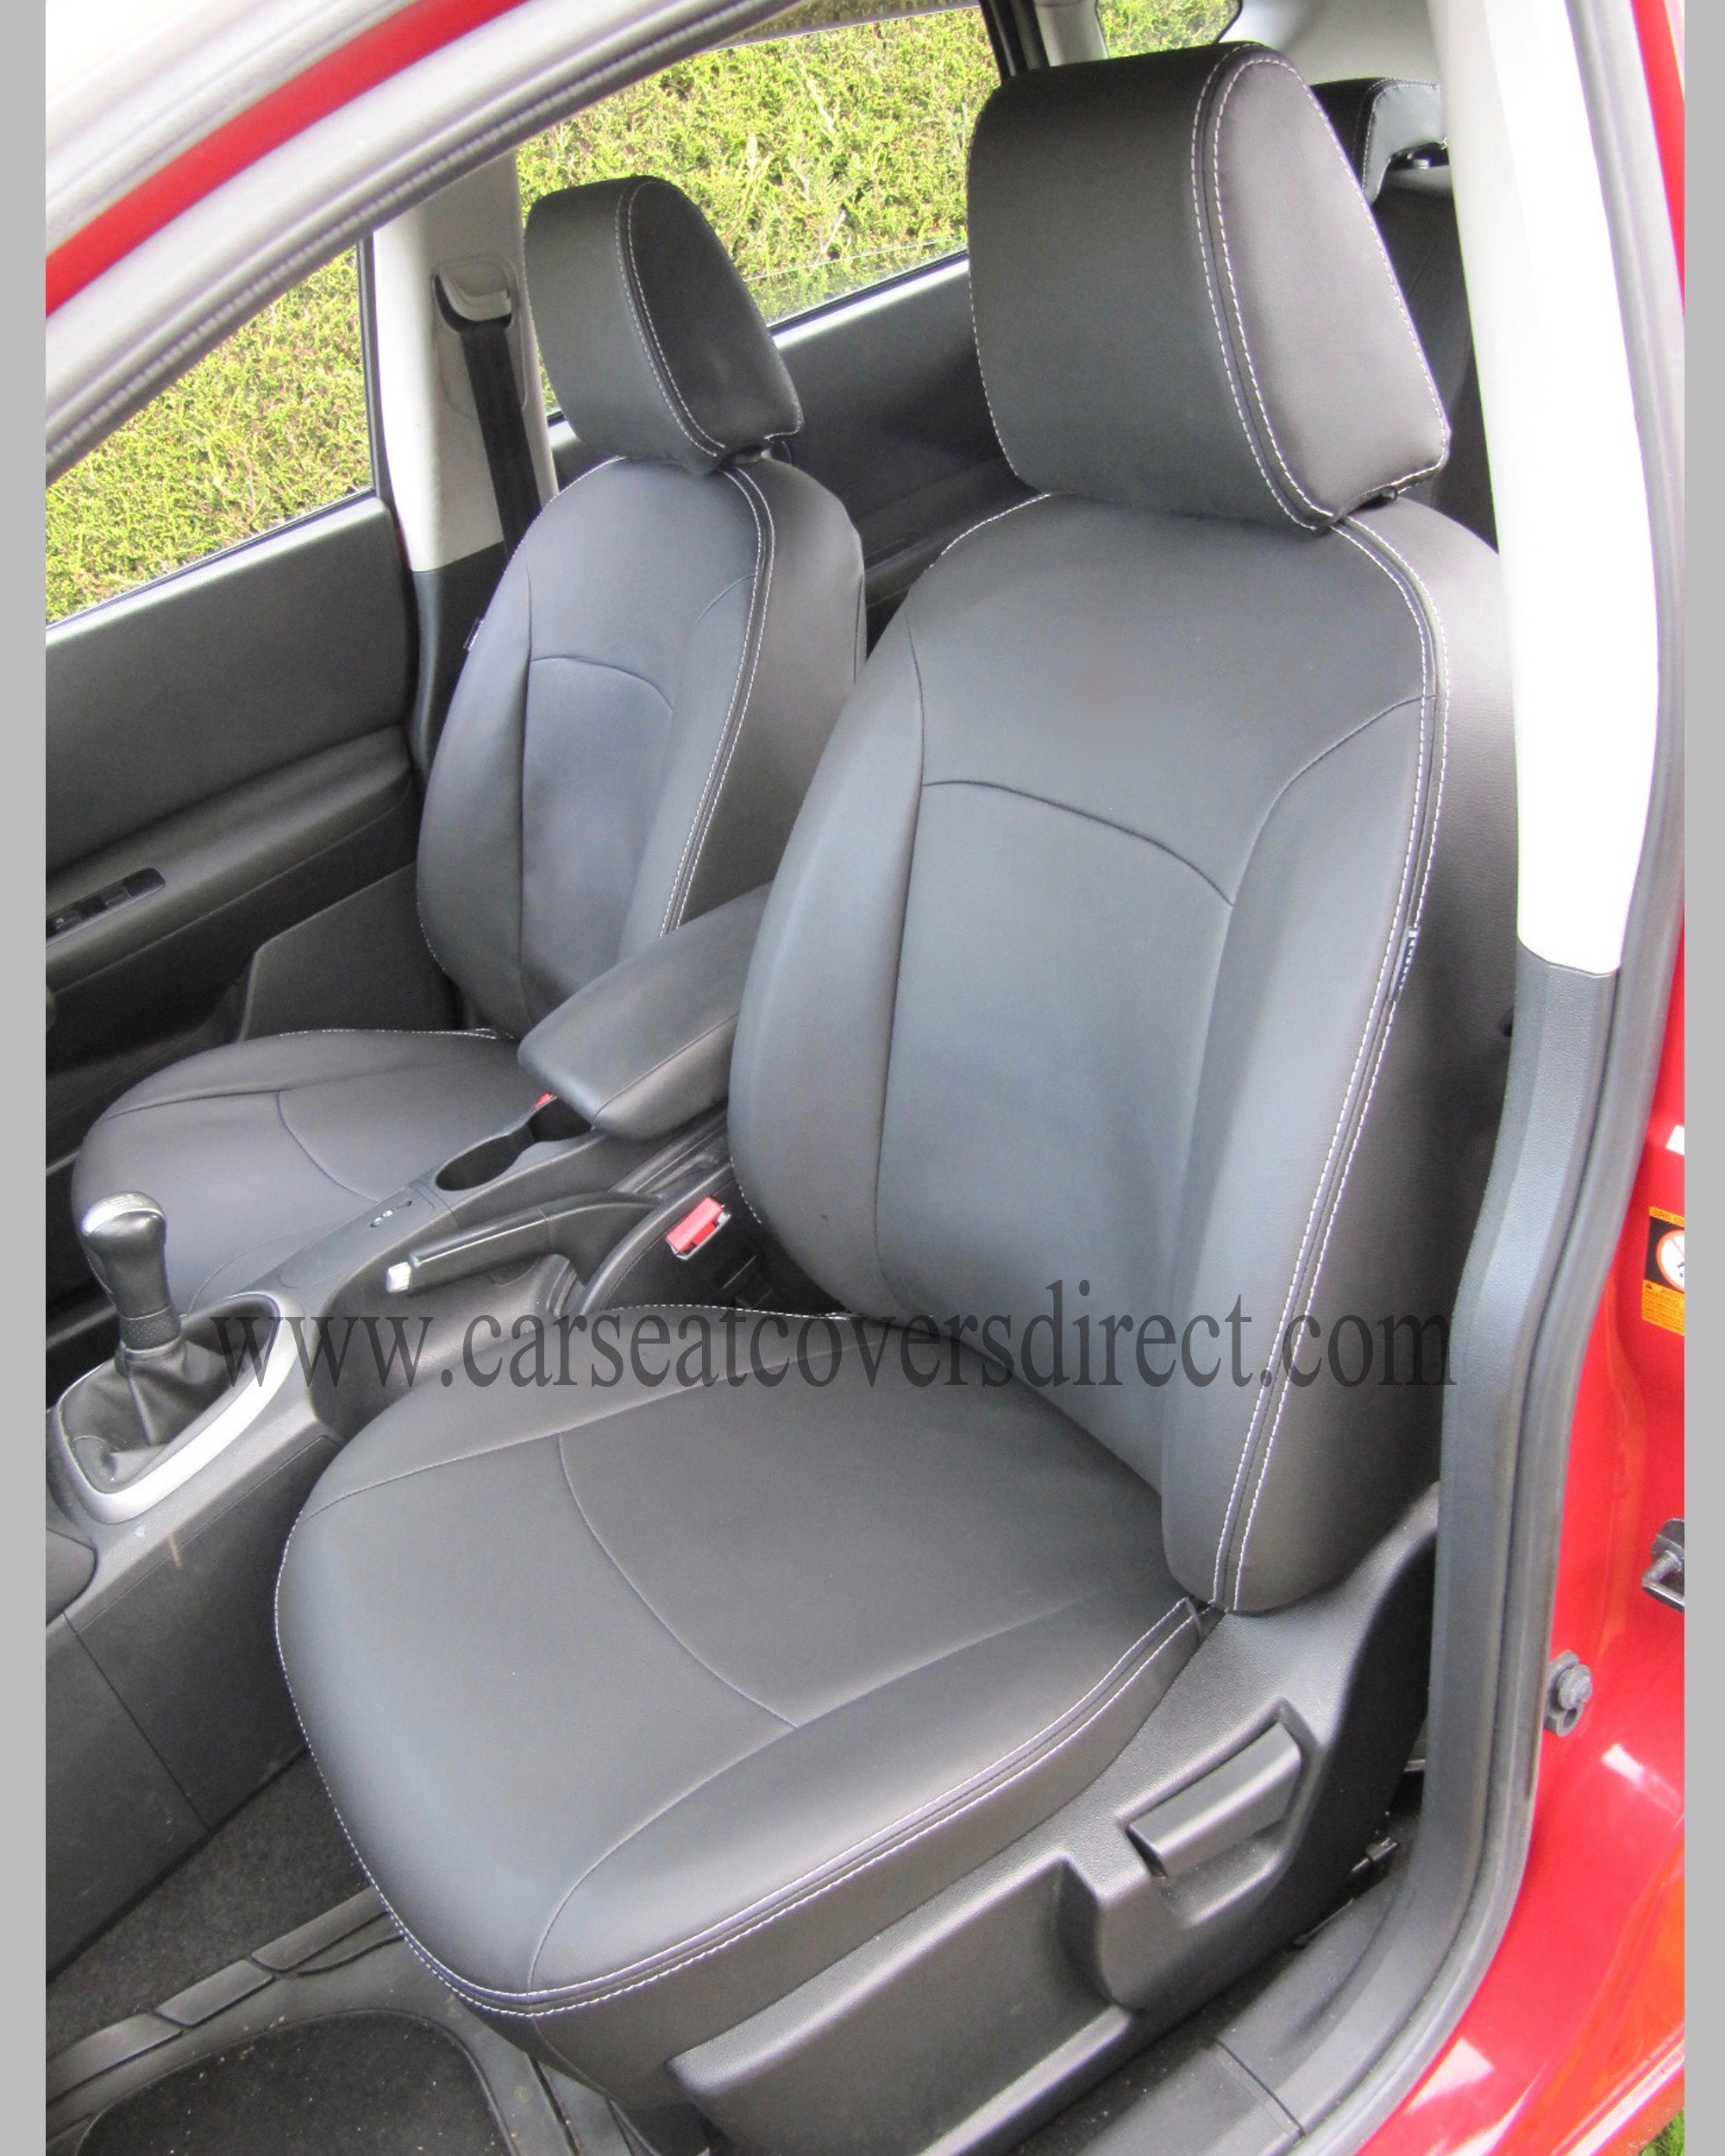 nissan qashqai seat covers custom car seat covers custom tailored seat covers car seat. Black Bedroom Furniture Sets. Home Design Ideas